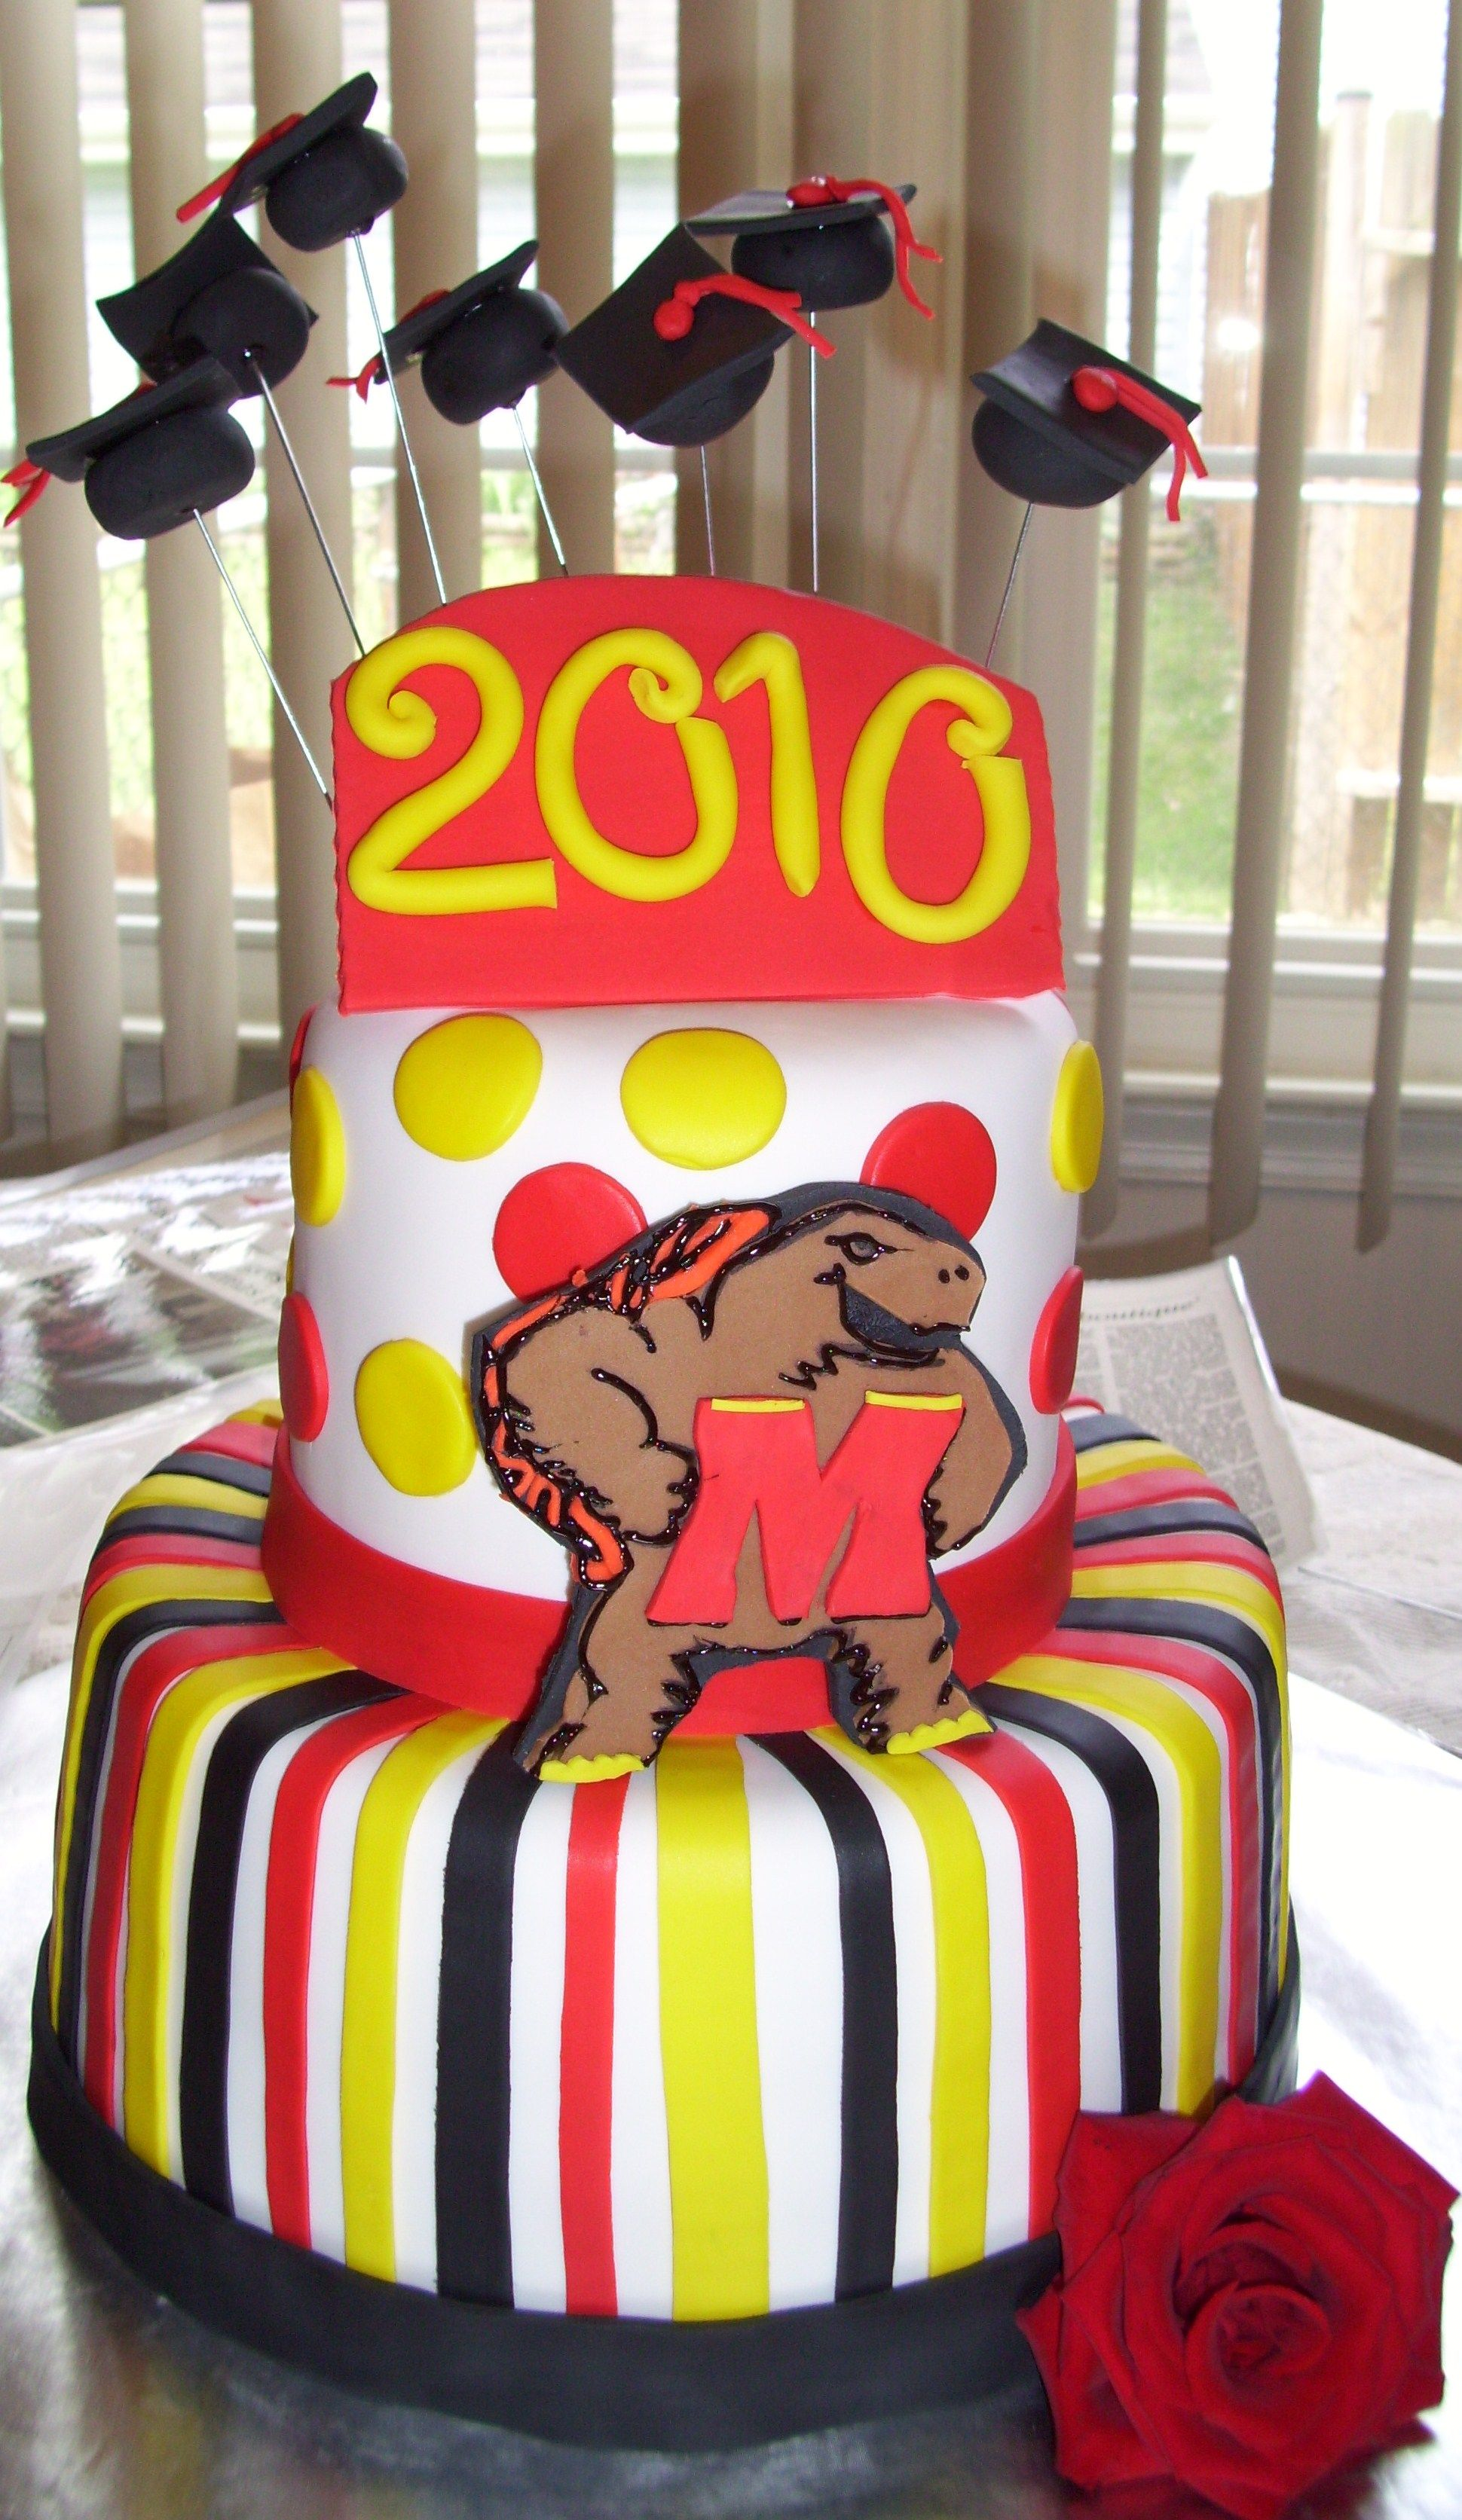 Maryland Terps Cake Footballtailgate Pinterest Maryland Cake